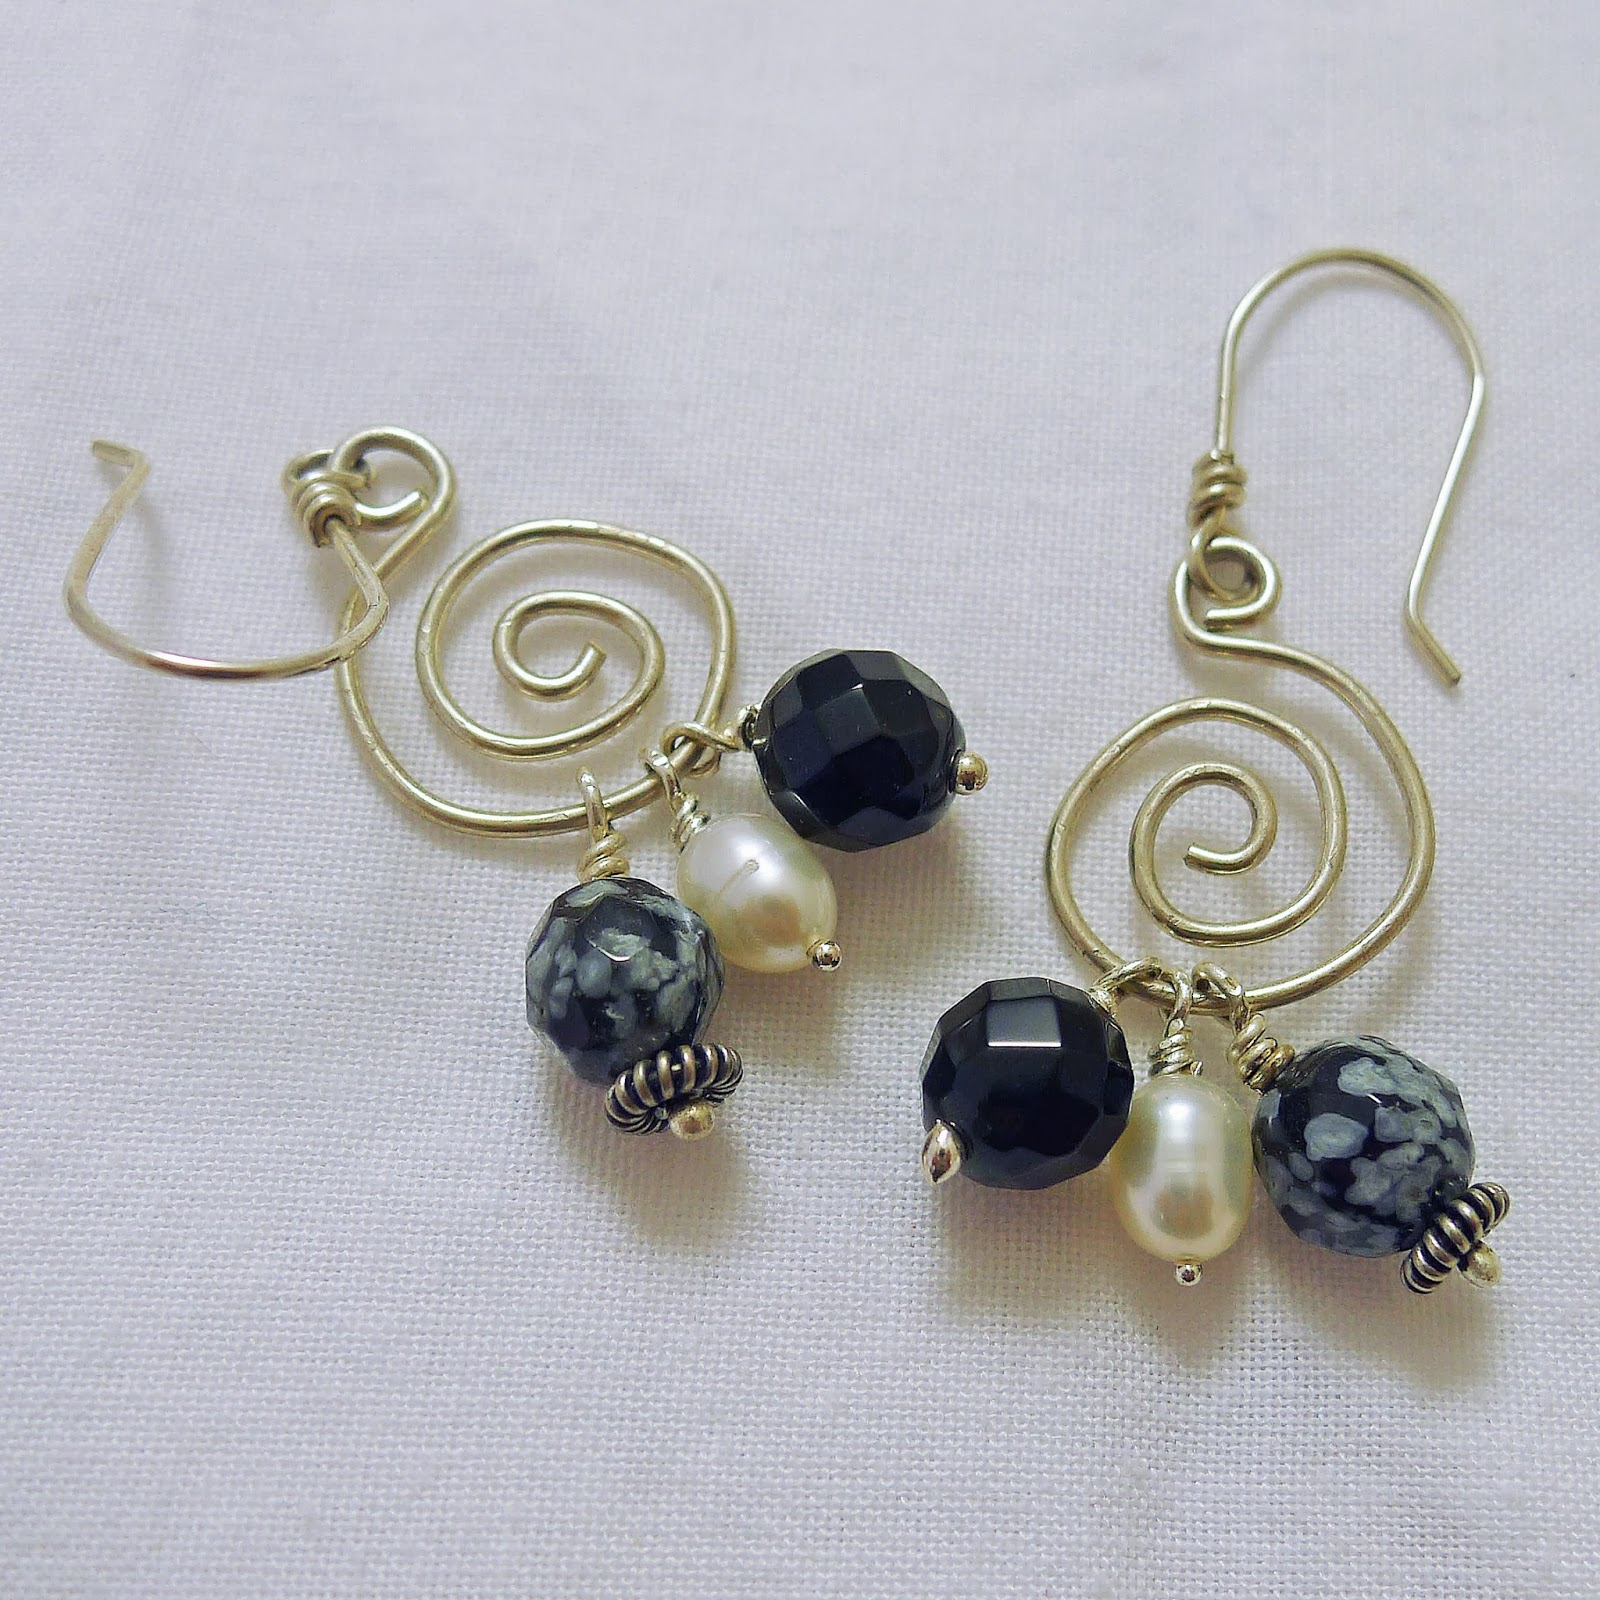 https://www.etsy.com/nz/listing/176864609/4-in-1-interchangeable-onyx-pearl-and?ref=related-0